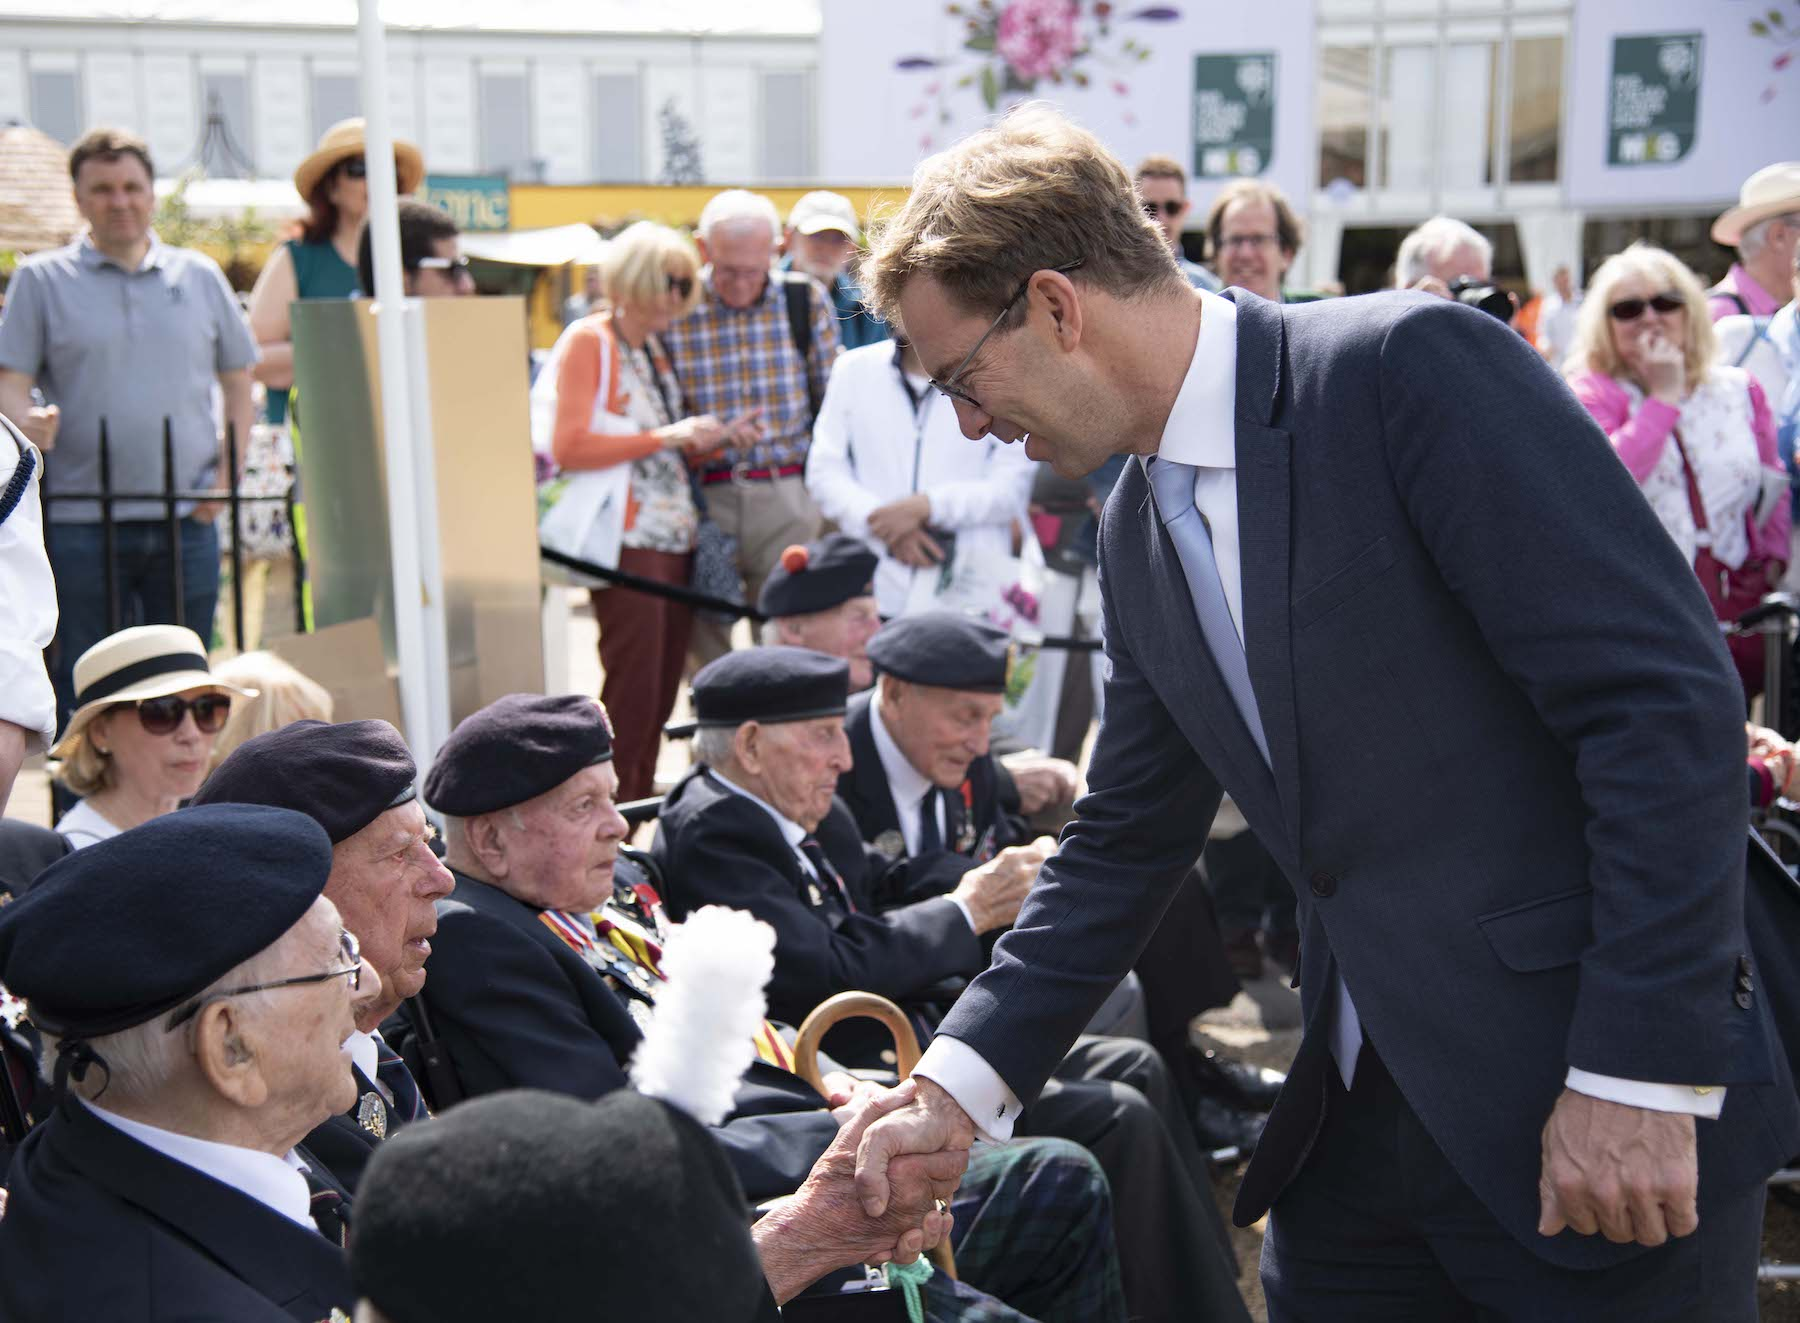 MP Tobias Ellwood meets the Chelsea Pensioners and D-Day Veterans